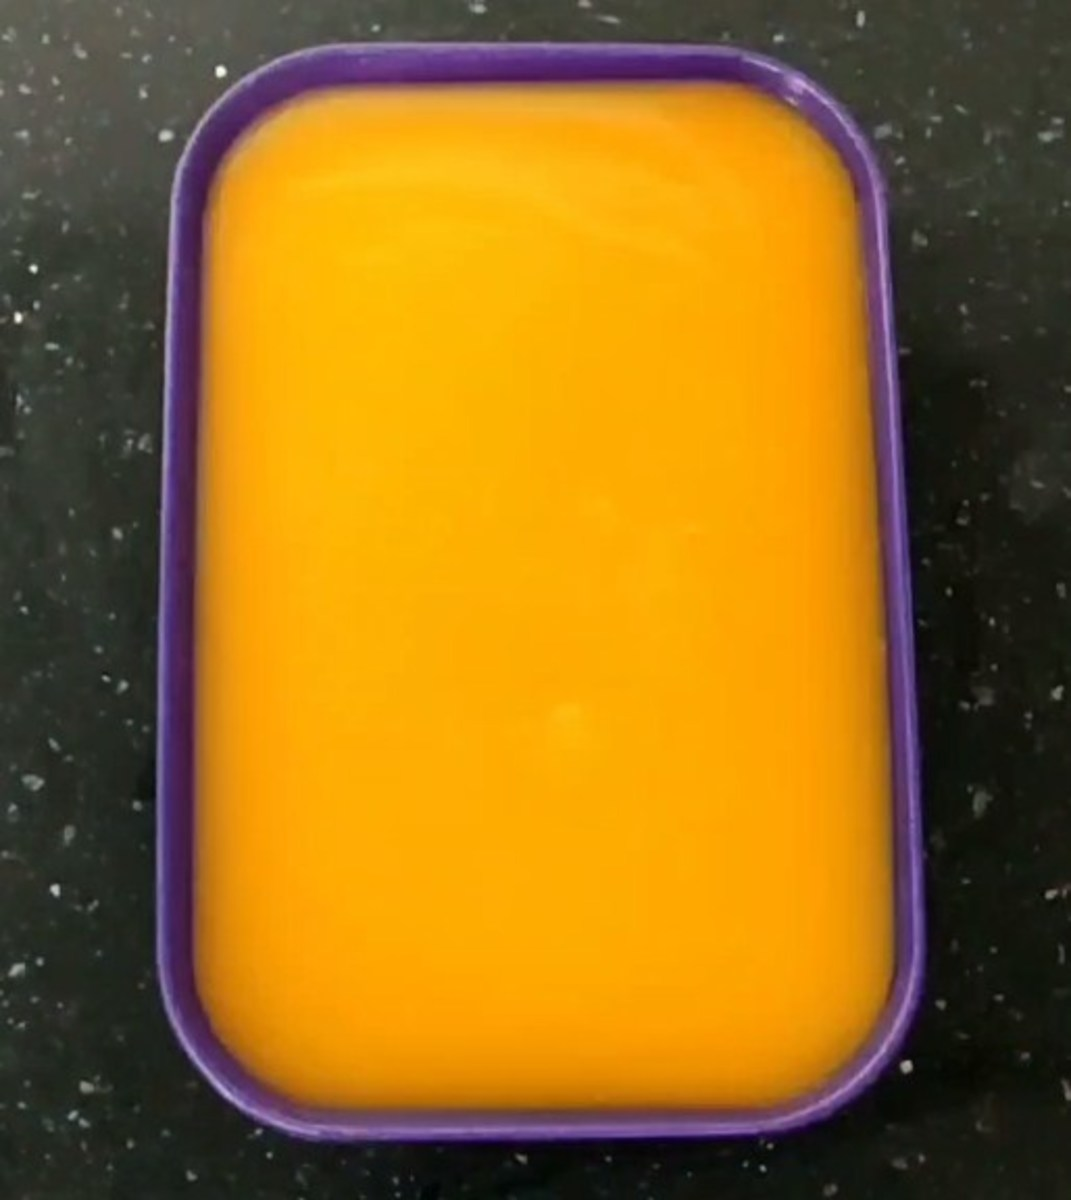 Transfer the mixture to a pudding mould. Allow to cool to room temperature.